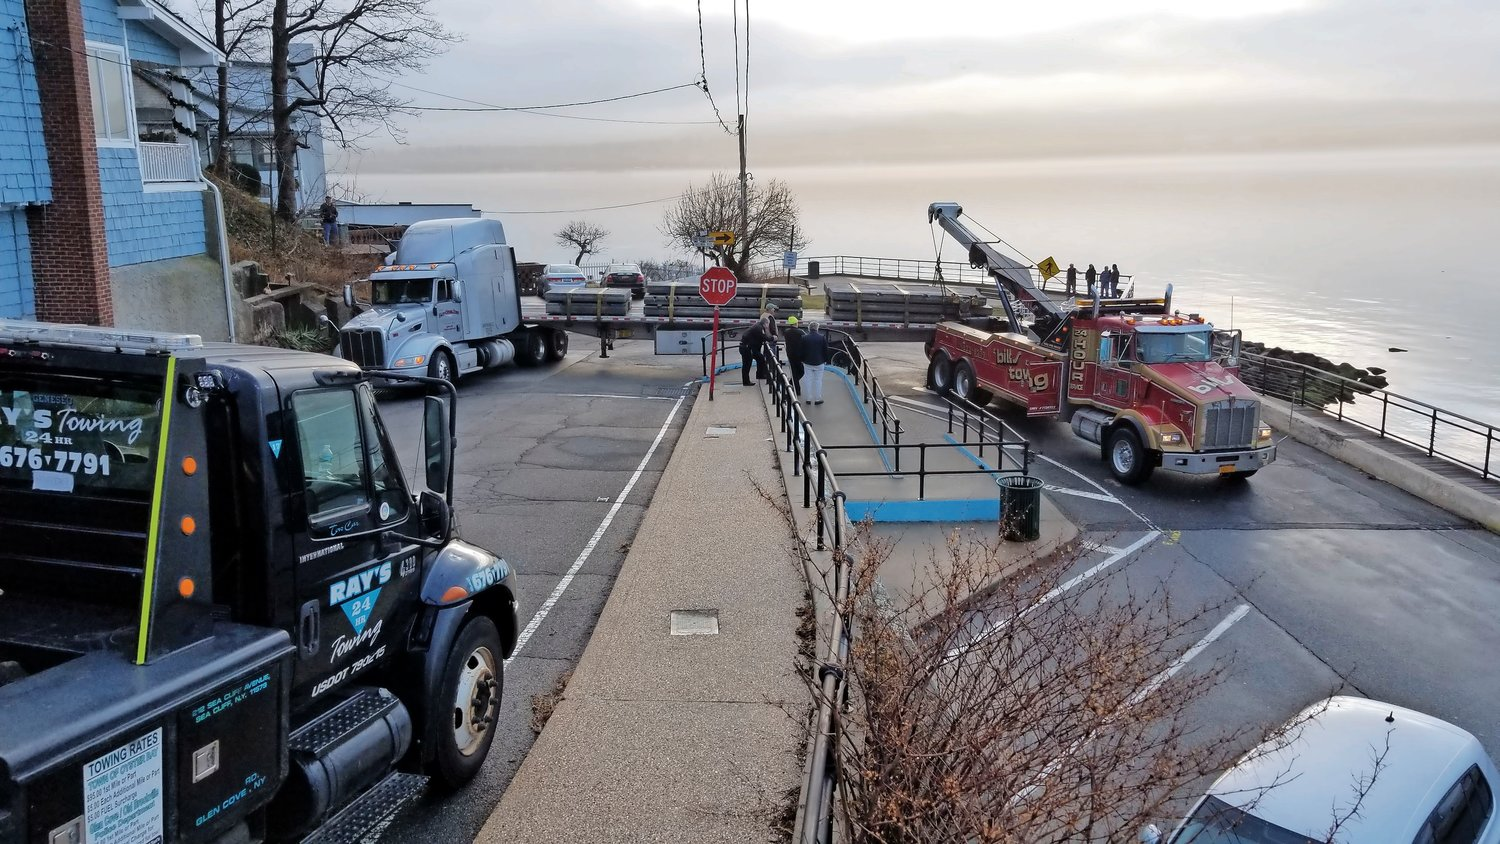 A truck driver traveling through Sea Cliff on Jan. 8 accidentally wedged his eighteen-wheeler into a hairpin turn at the end of The Boulevard.